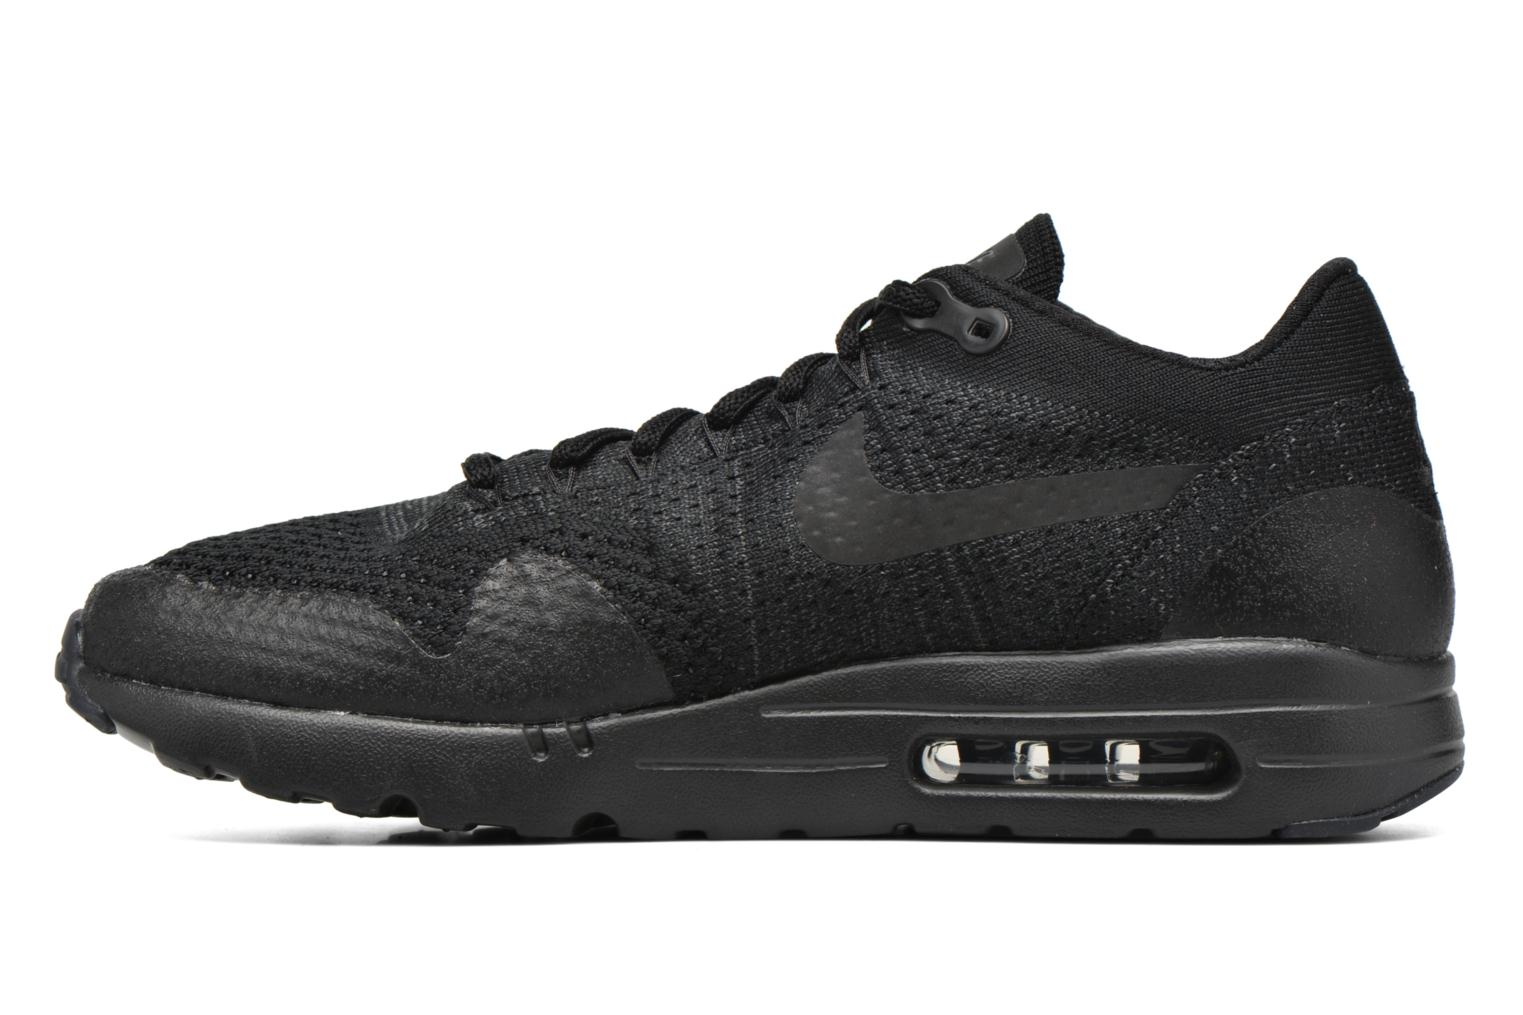 Vente nike air max pas cher homme sarenza Chaussures 2514